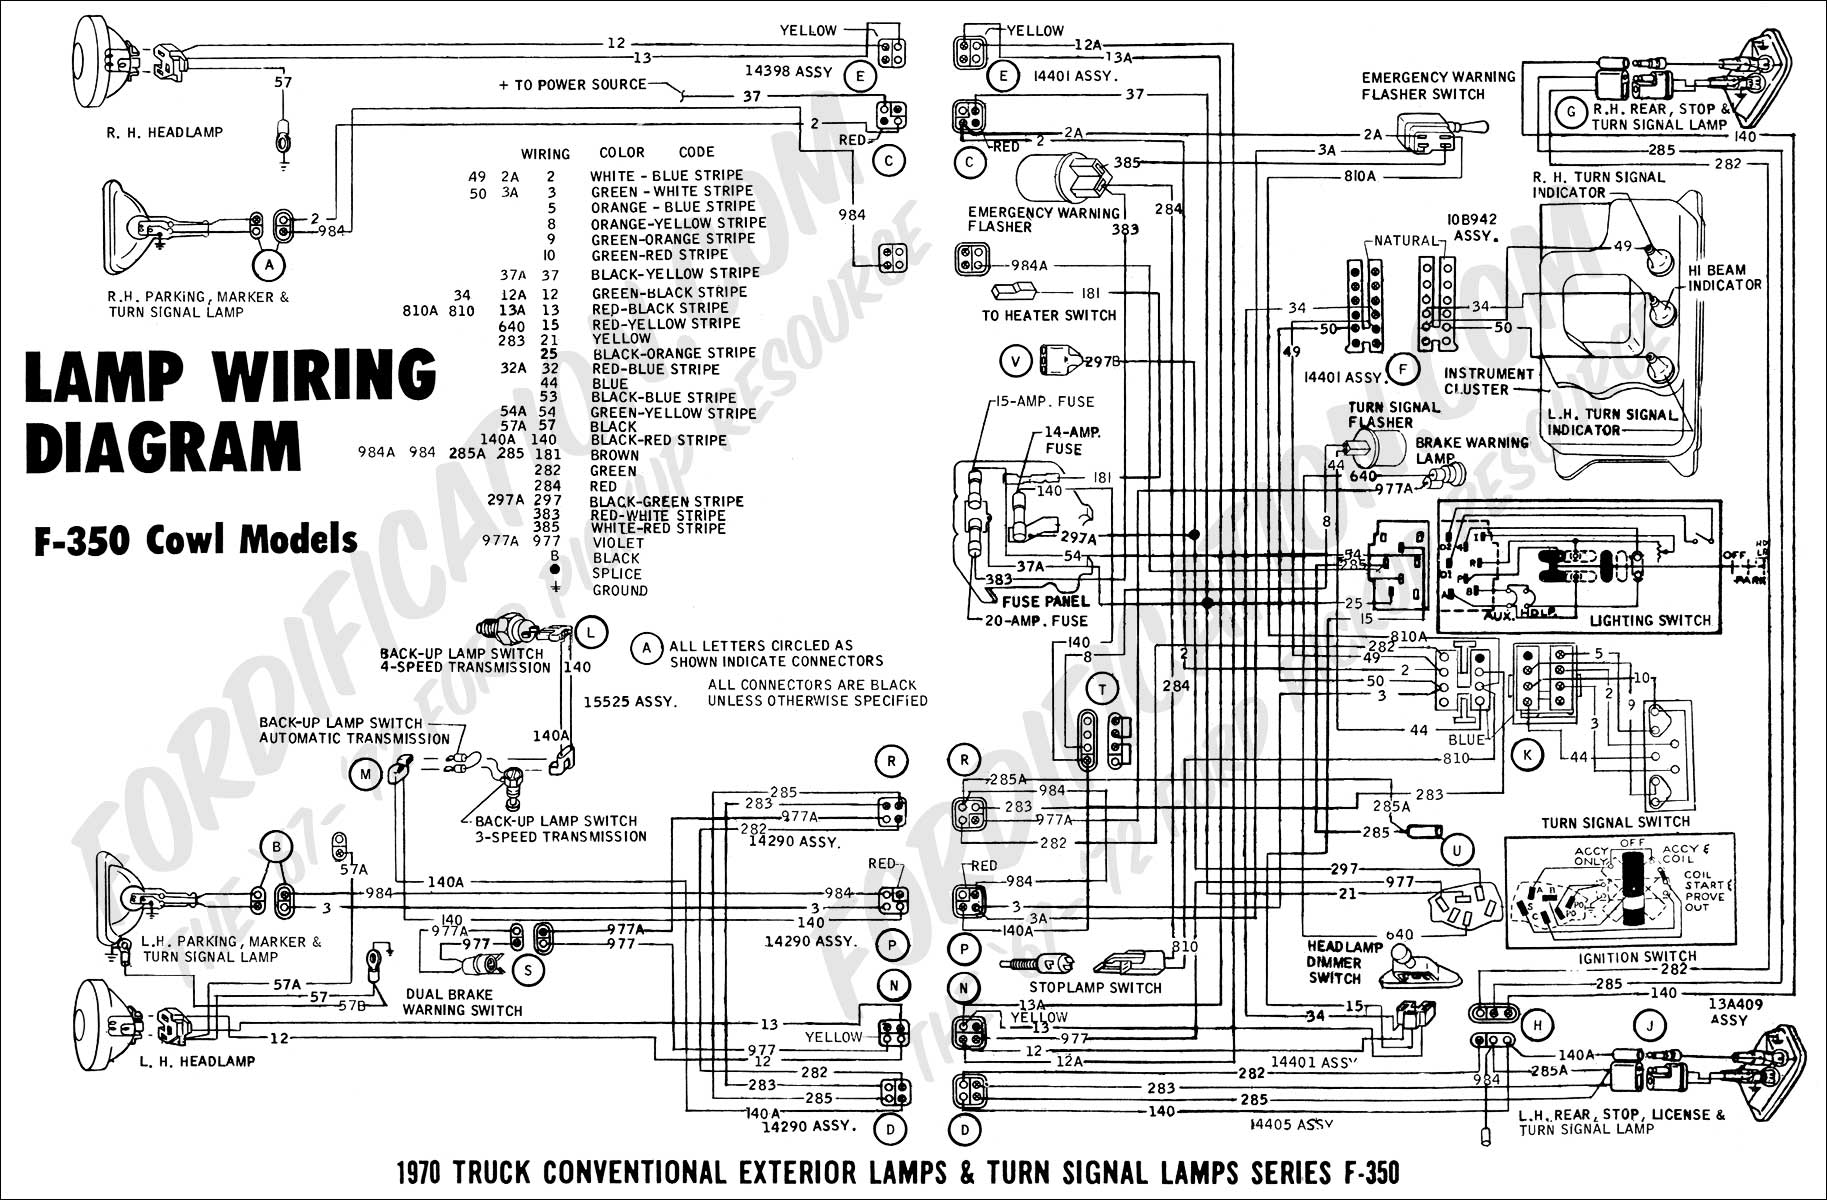 Ford F350 Diagram | Online Wiring Diagram Wiring Diagram For F on wiring diagram for 2003 focus, wiring diagram for 2003 s10, wiring diagram for 2003 blazer, wiring diagram for 2003 sonoma, wiring diagram for 2003 expedition, wiring diagram for 2003 explorer, wiring diagram for 2003 malibu, wiring diagram for 2003 tahoe, wiring diagram for 2003 grand cherokee, wiring diagram for 2003 grand marquis, wiring diagram for 2003 dakota, wiring diagram for 2003 xterra, wiring diagram for 2003 ram 1500, wiring diagram for 2003 grand caravan, wiring diagram for 2003 silverado,